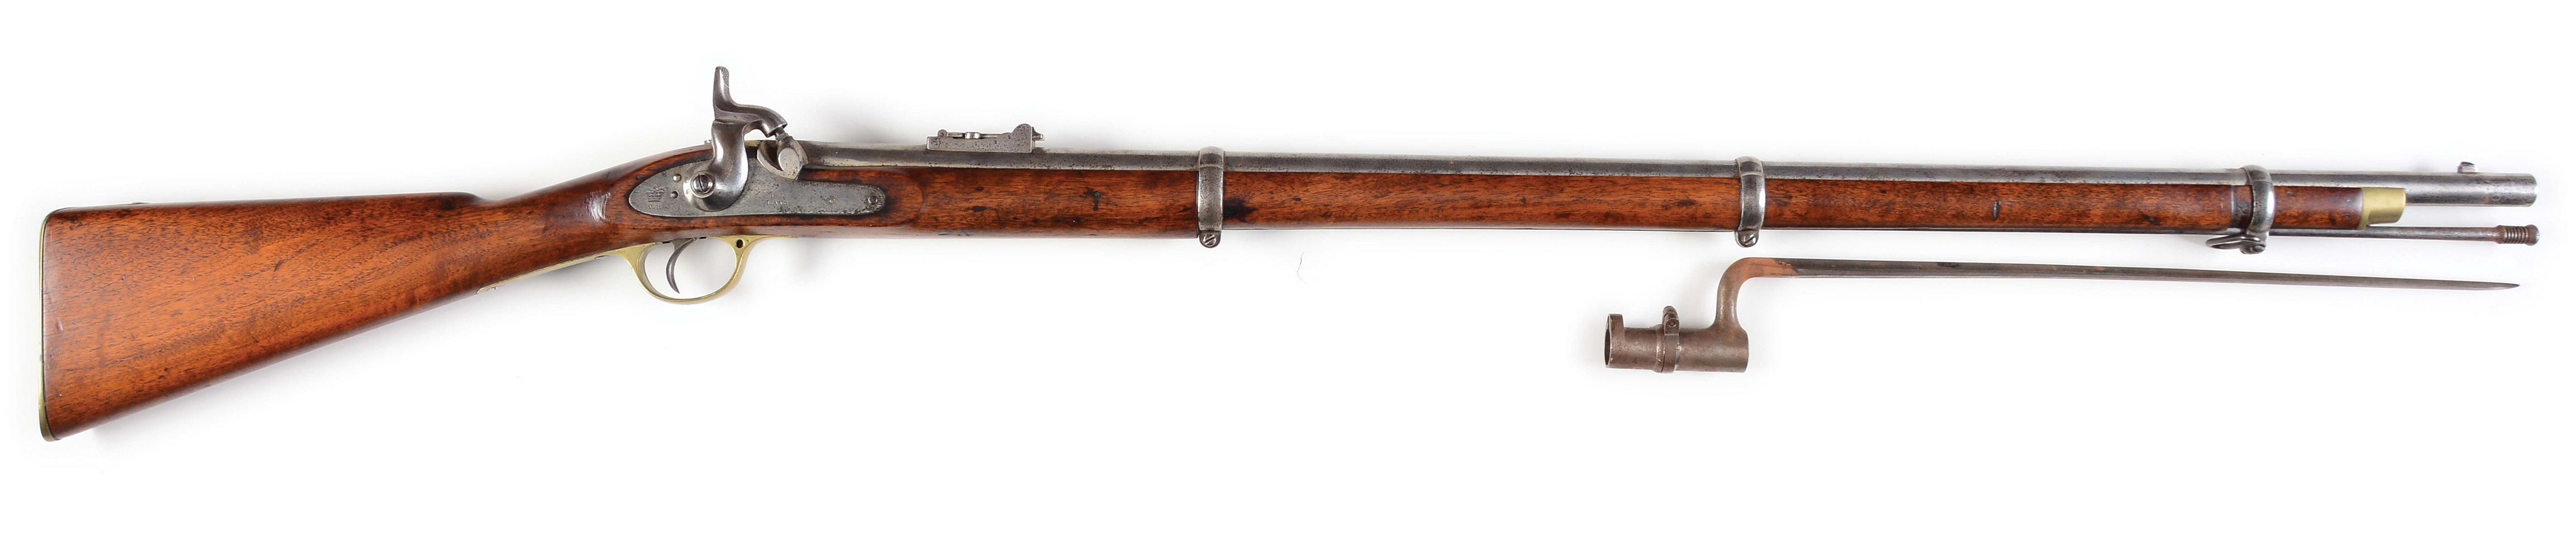 (A) CIVIL WAR LONDON ARMORY COMPANY .577 CALIBER PERCUSSION 1853 ENFIELD MUSKET, DATED 1862.